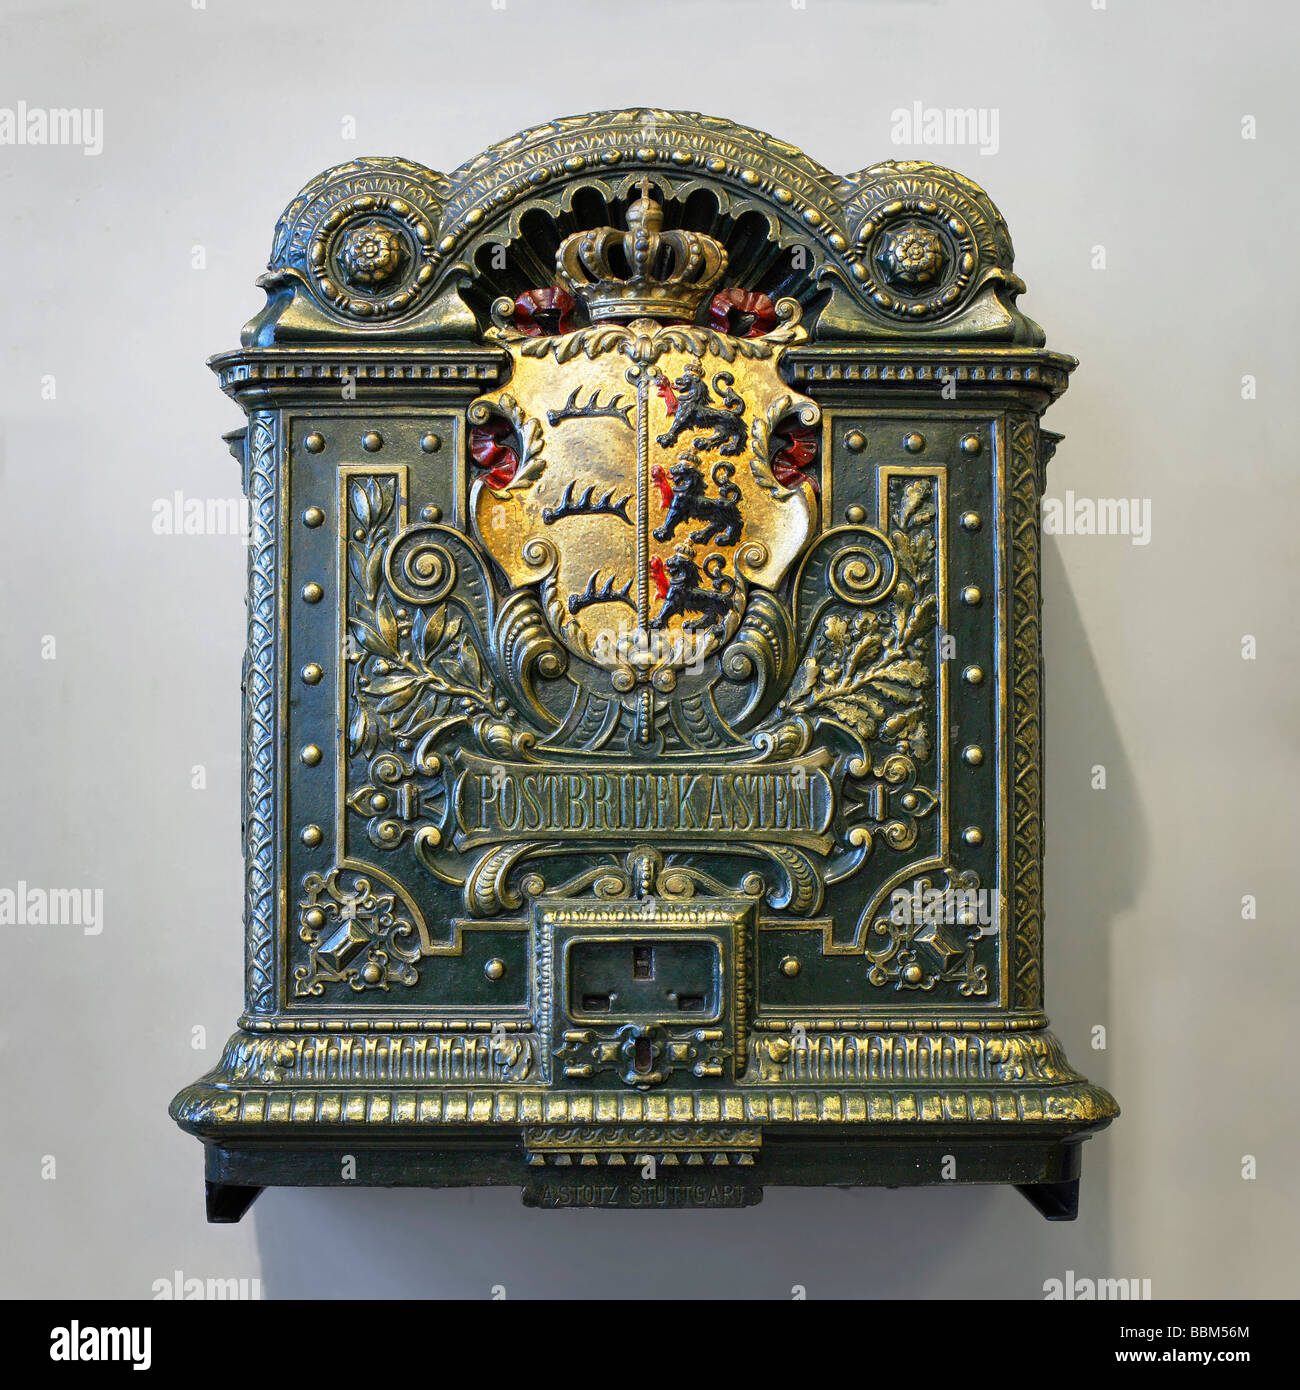 Historic letterbox at the Museum for Communication, Museum fuer Kommunikation, Berlin, Germany, Europe Stock Photo